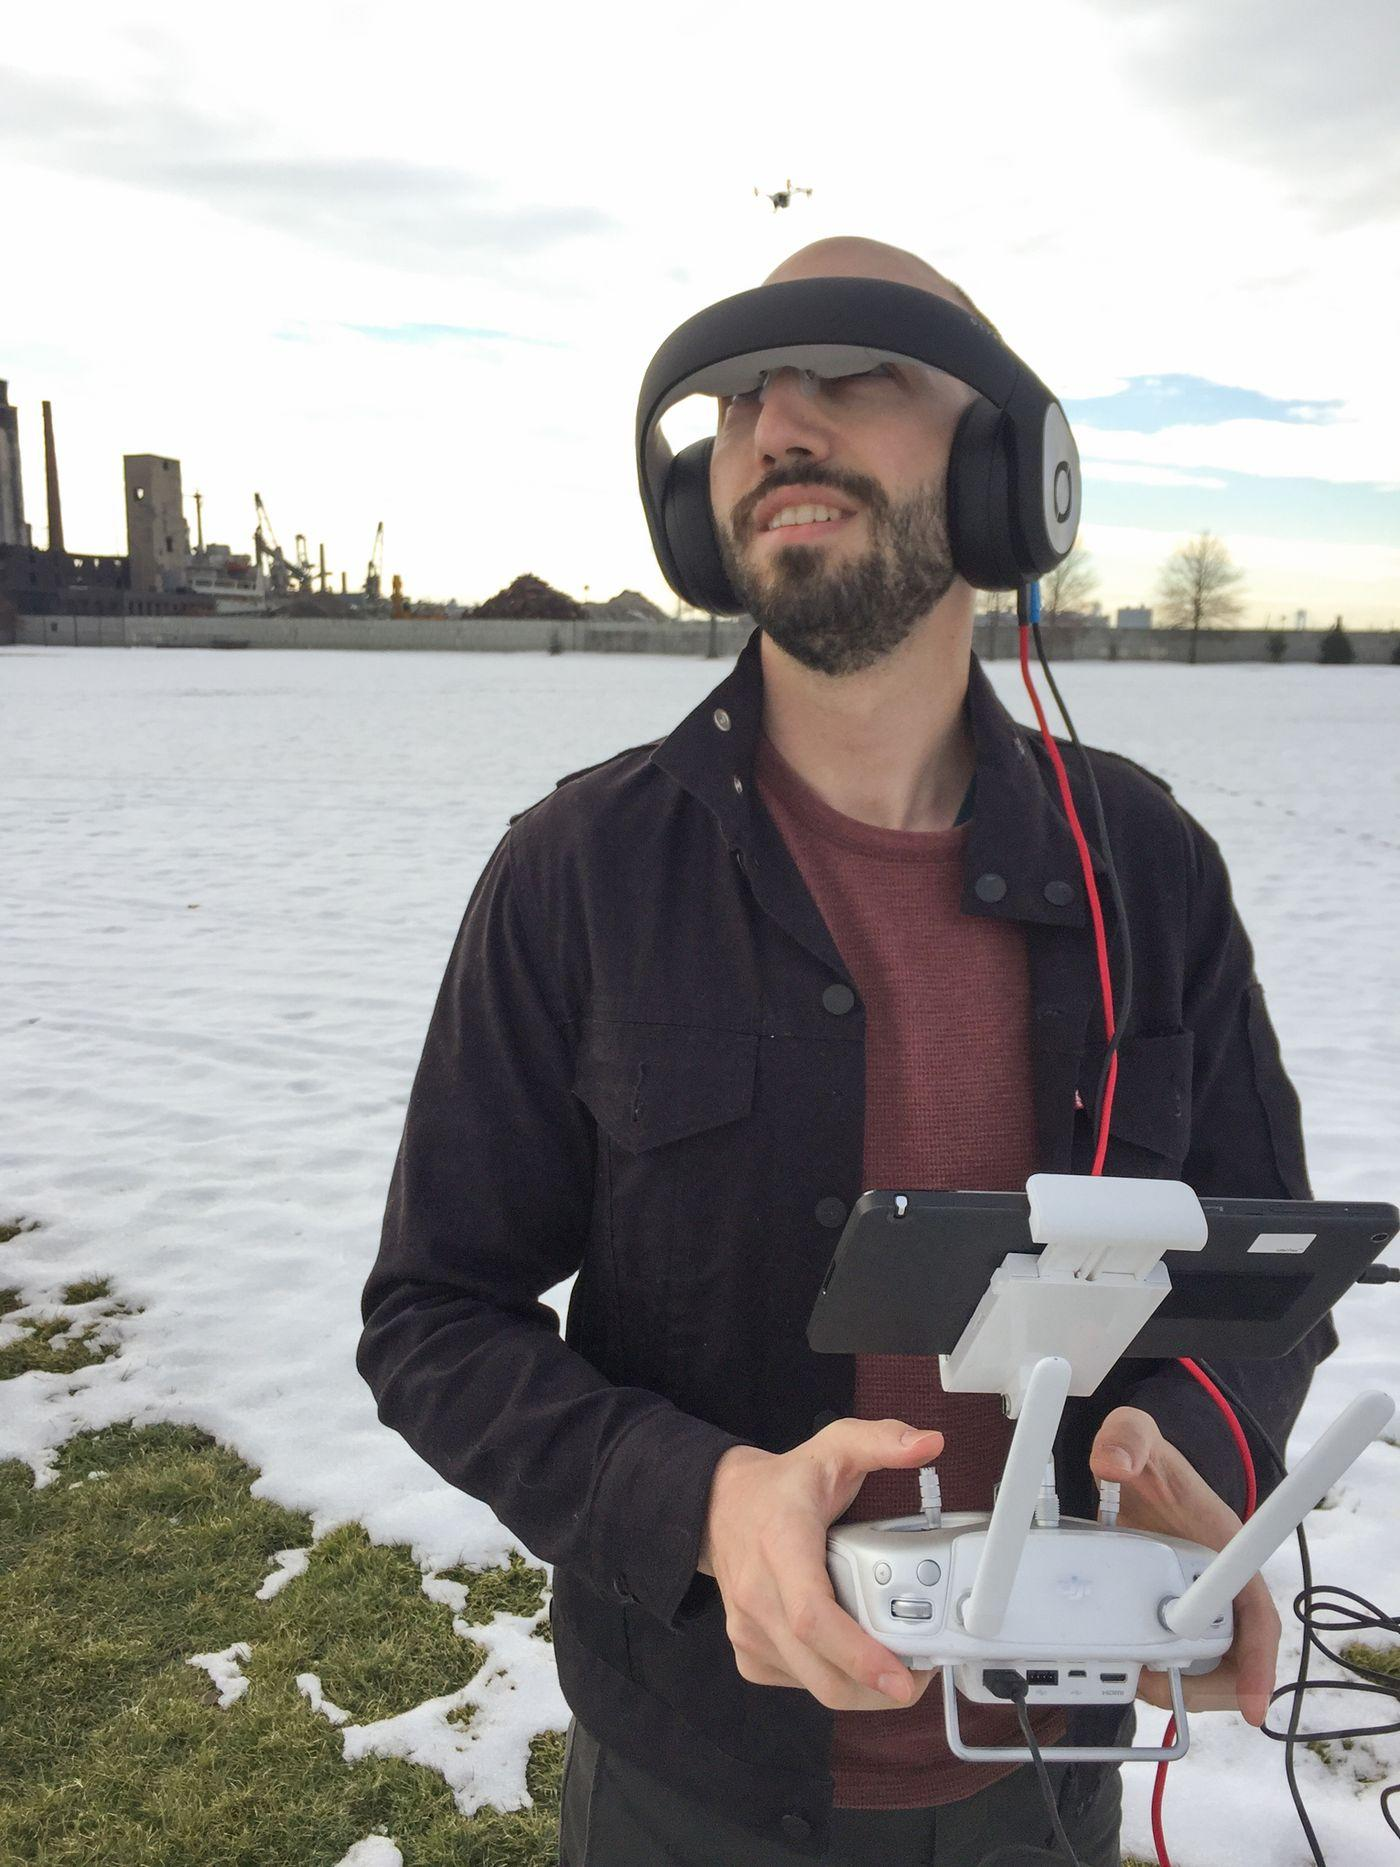 Bird's-eye view: using Avegant's Glyph headset to pilot a drone